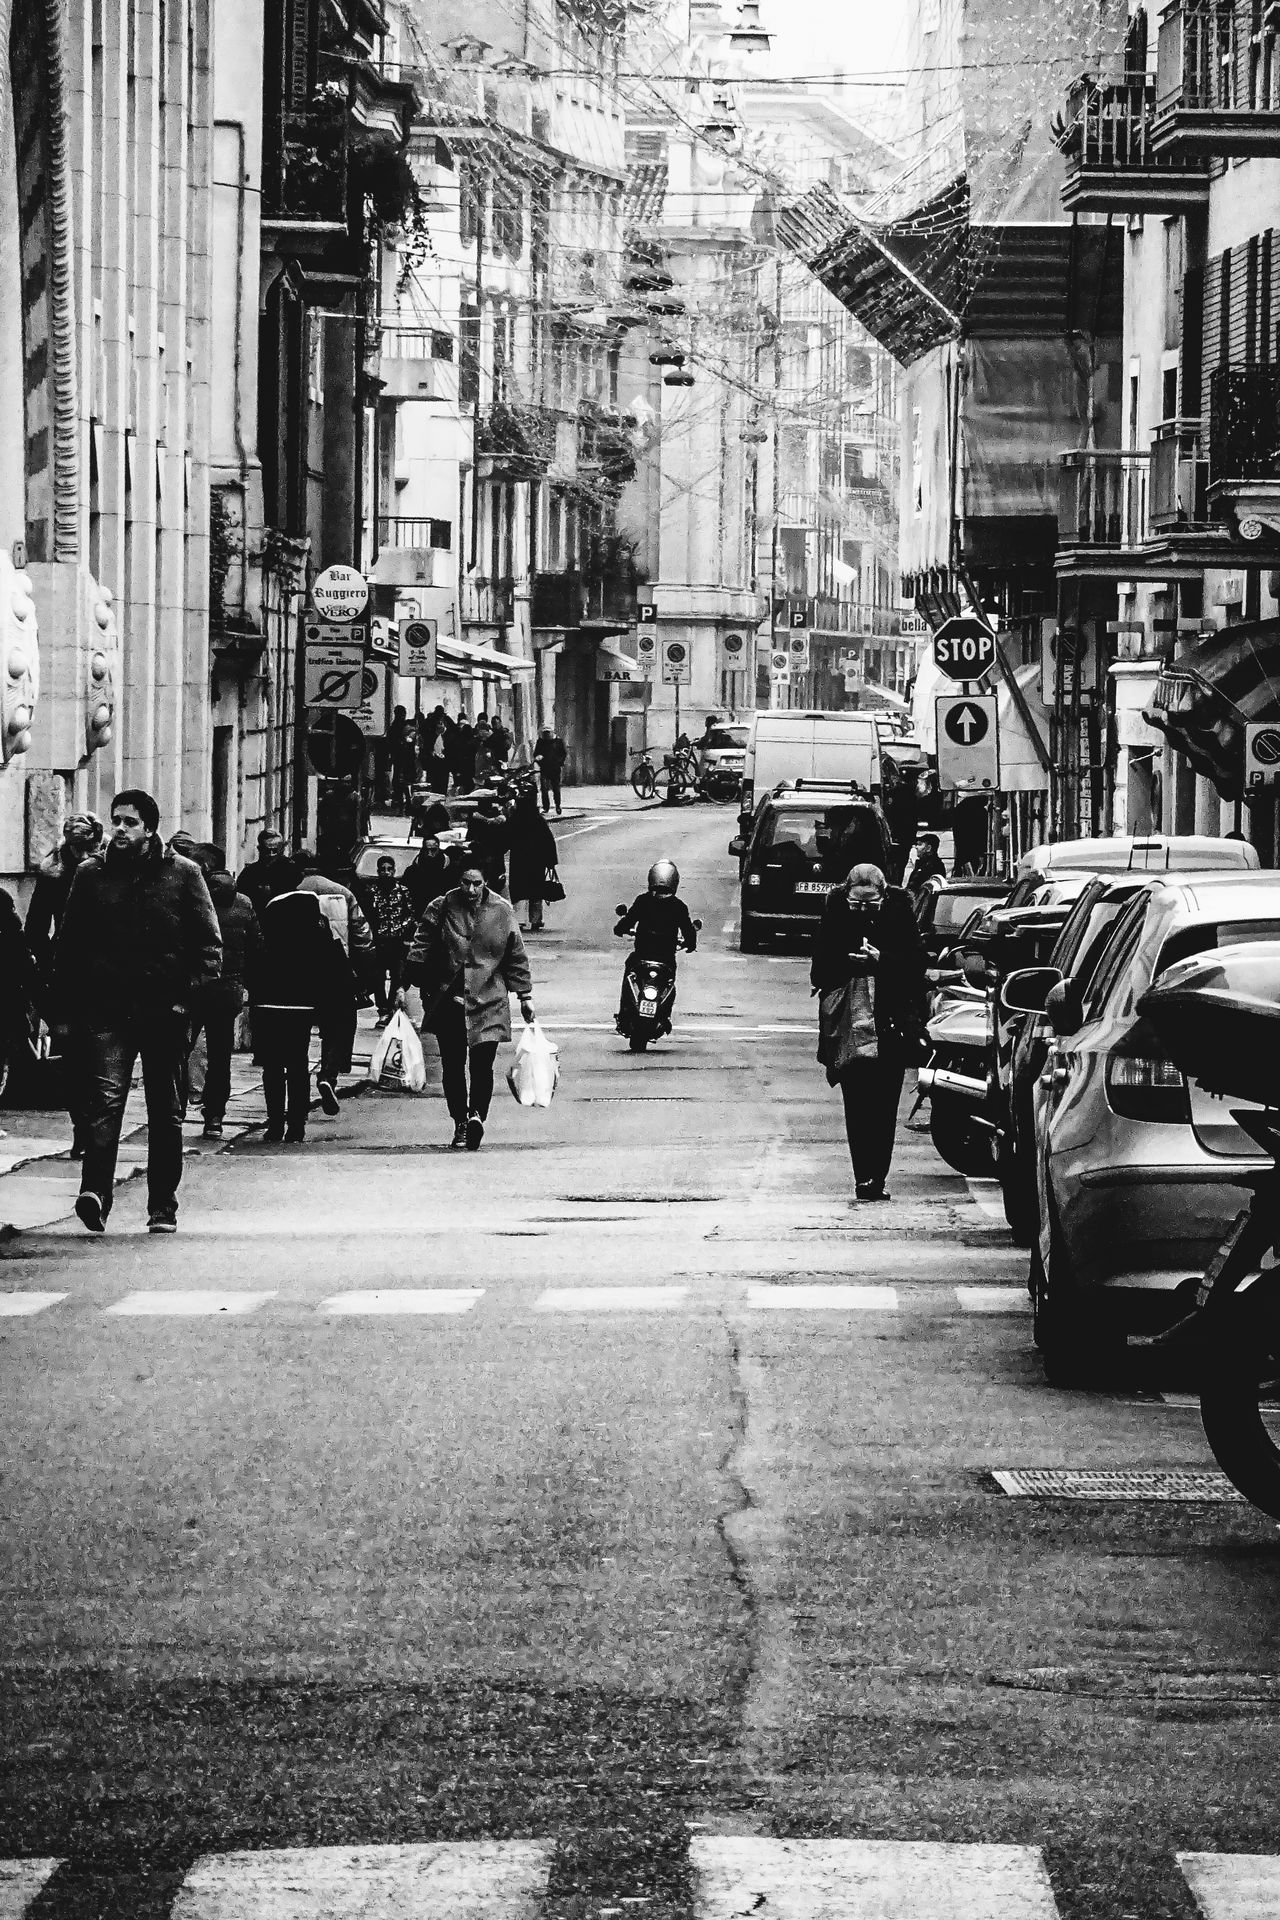 B&w Street Photography Black & White Black And White Blackandwhite Photography Composition EyeEm Gallery EyeEm Masterclass Frame It! Greyscale Leading Monochrome Motorcycles Photography Road Scooter Street Street Photography Streetphotography